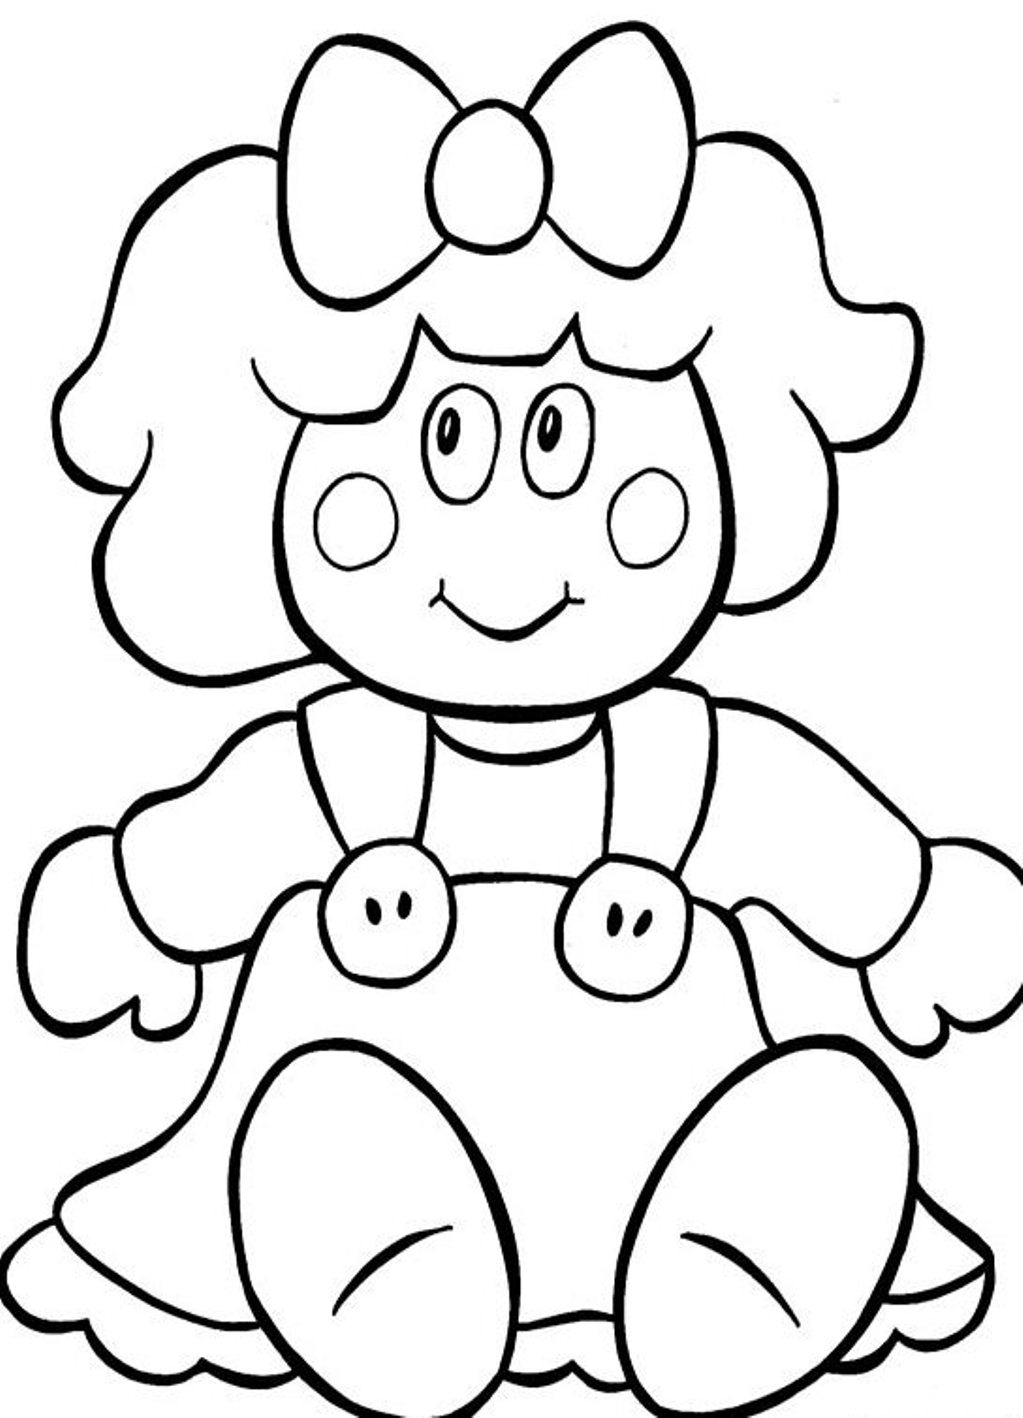 Doll Coloring Pages To Download And Print For Free Colouring Pages Of